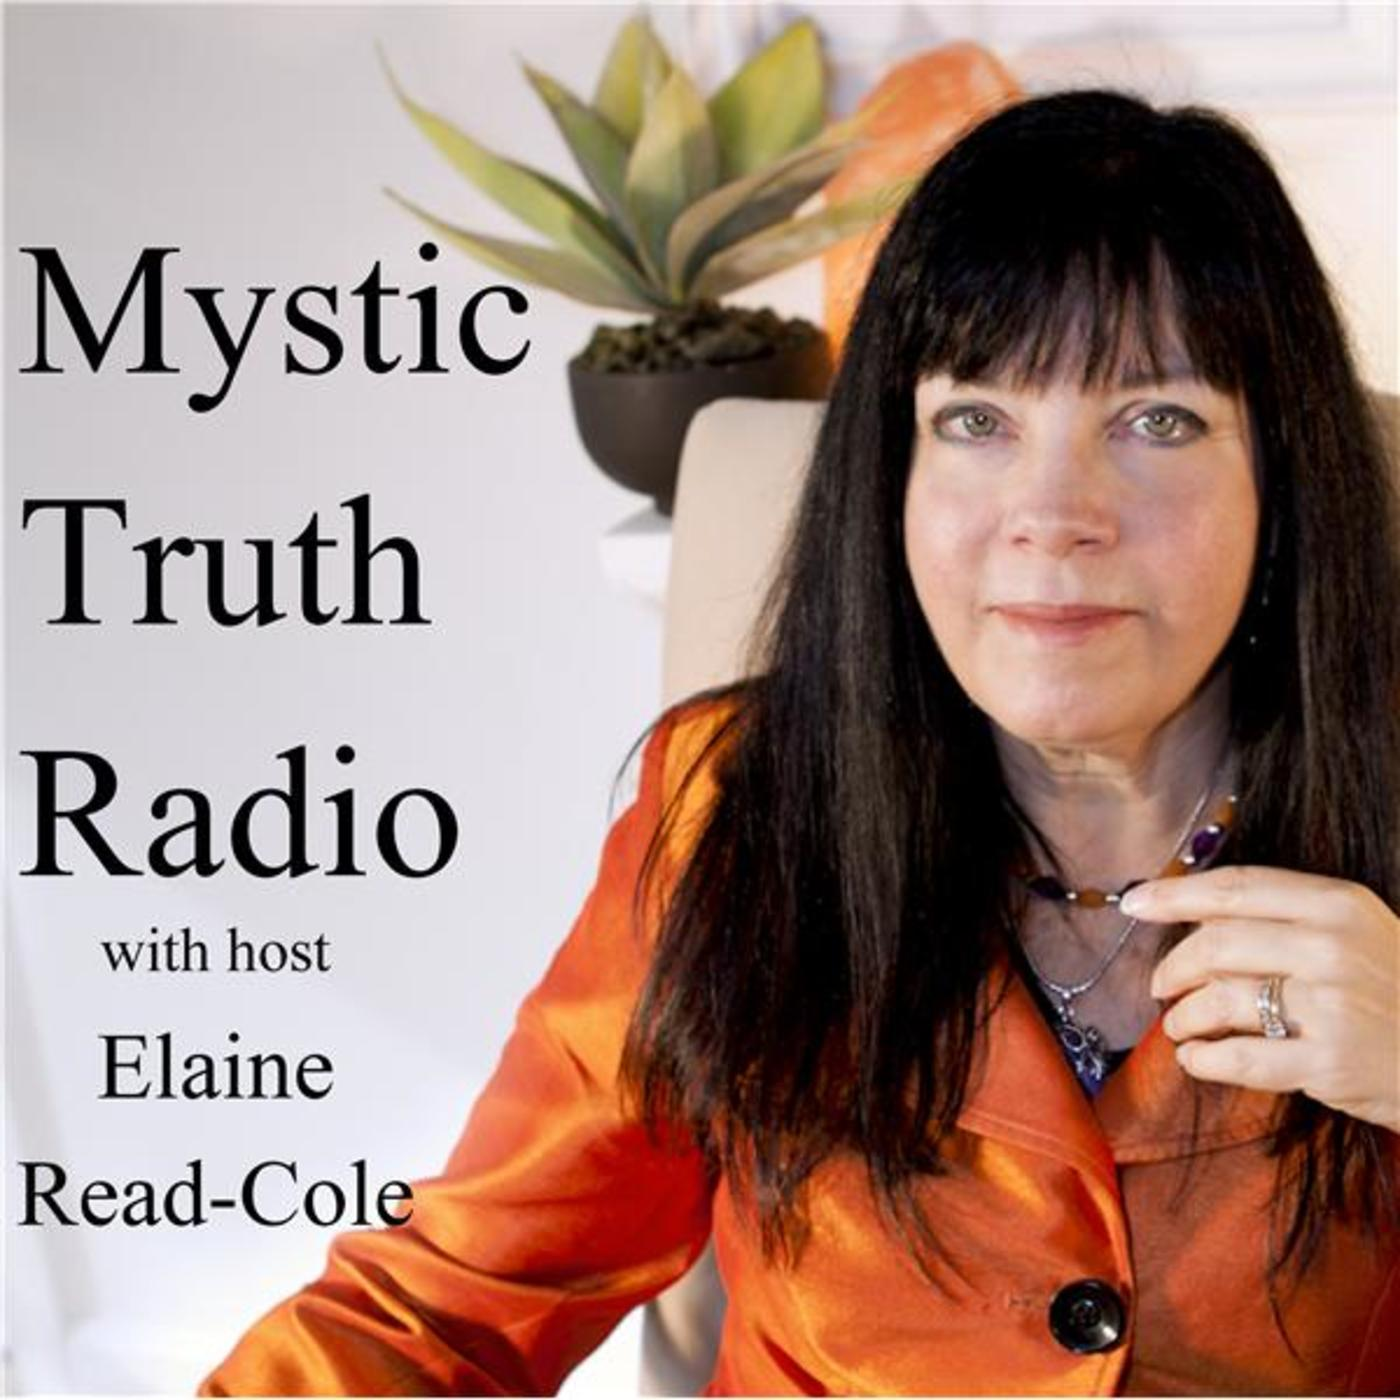 Mystic Truth Radio